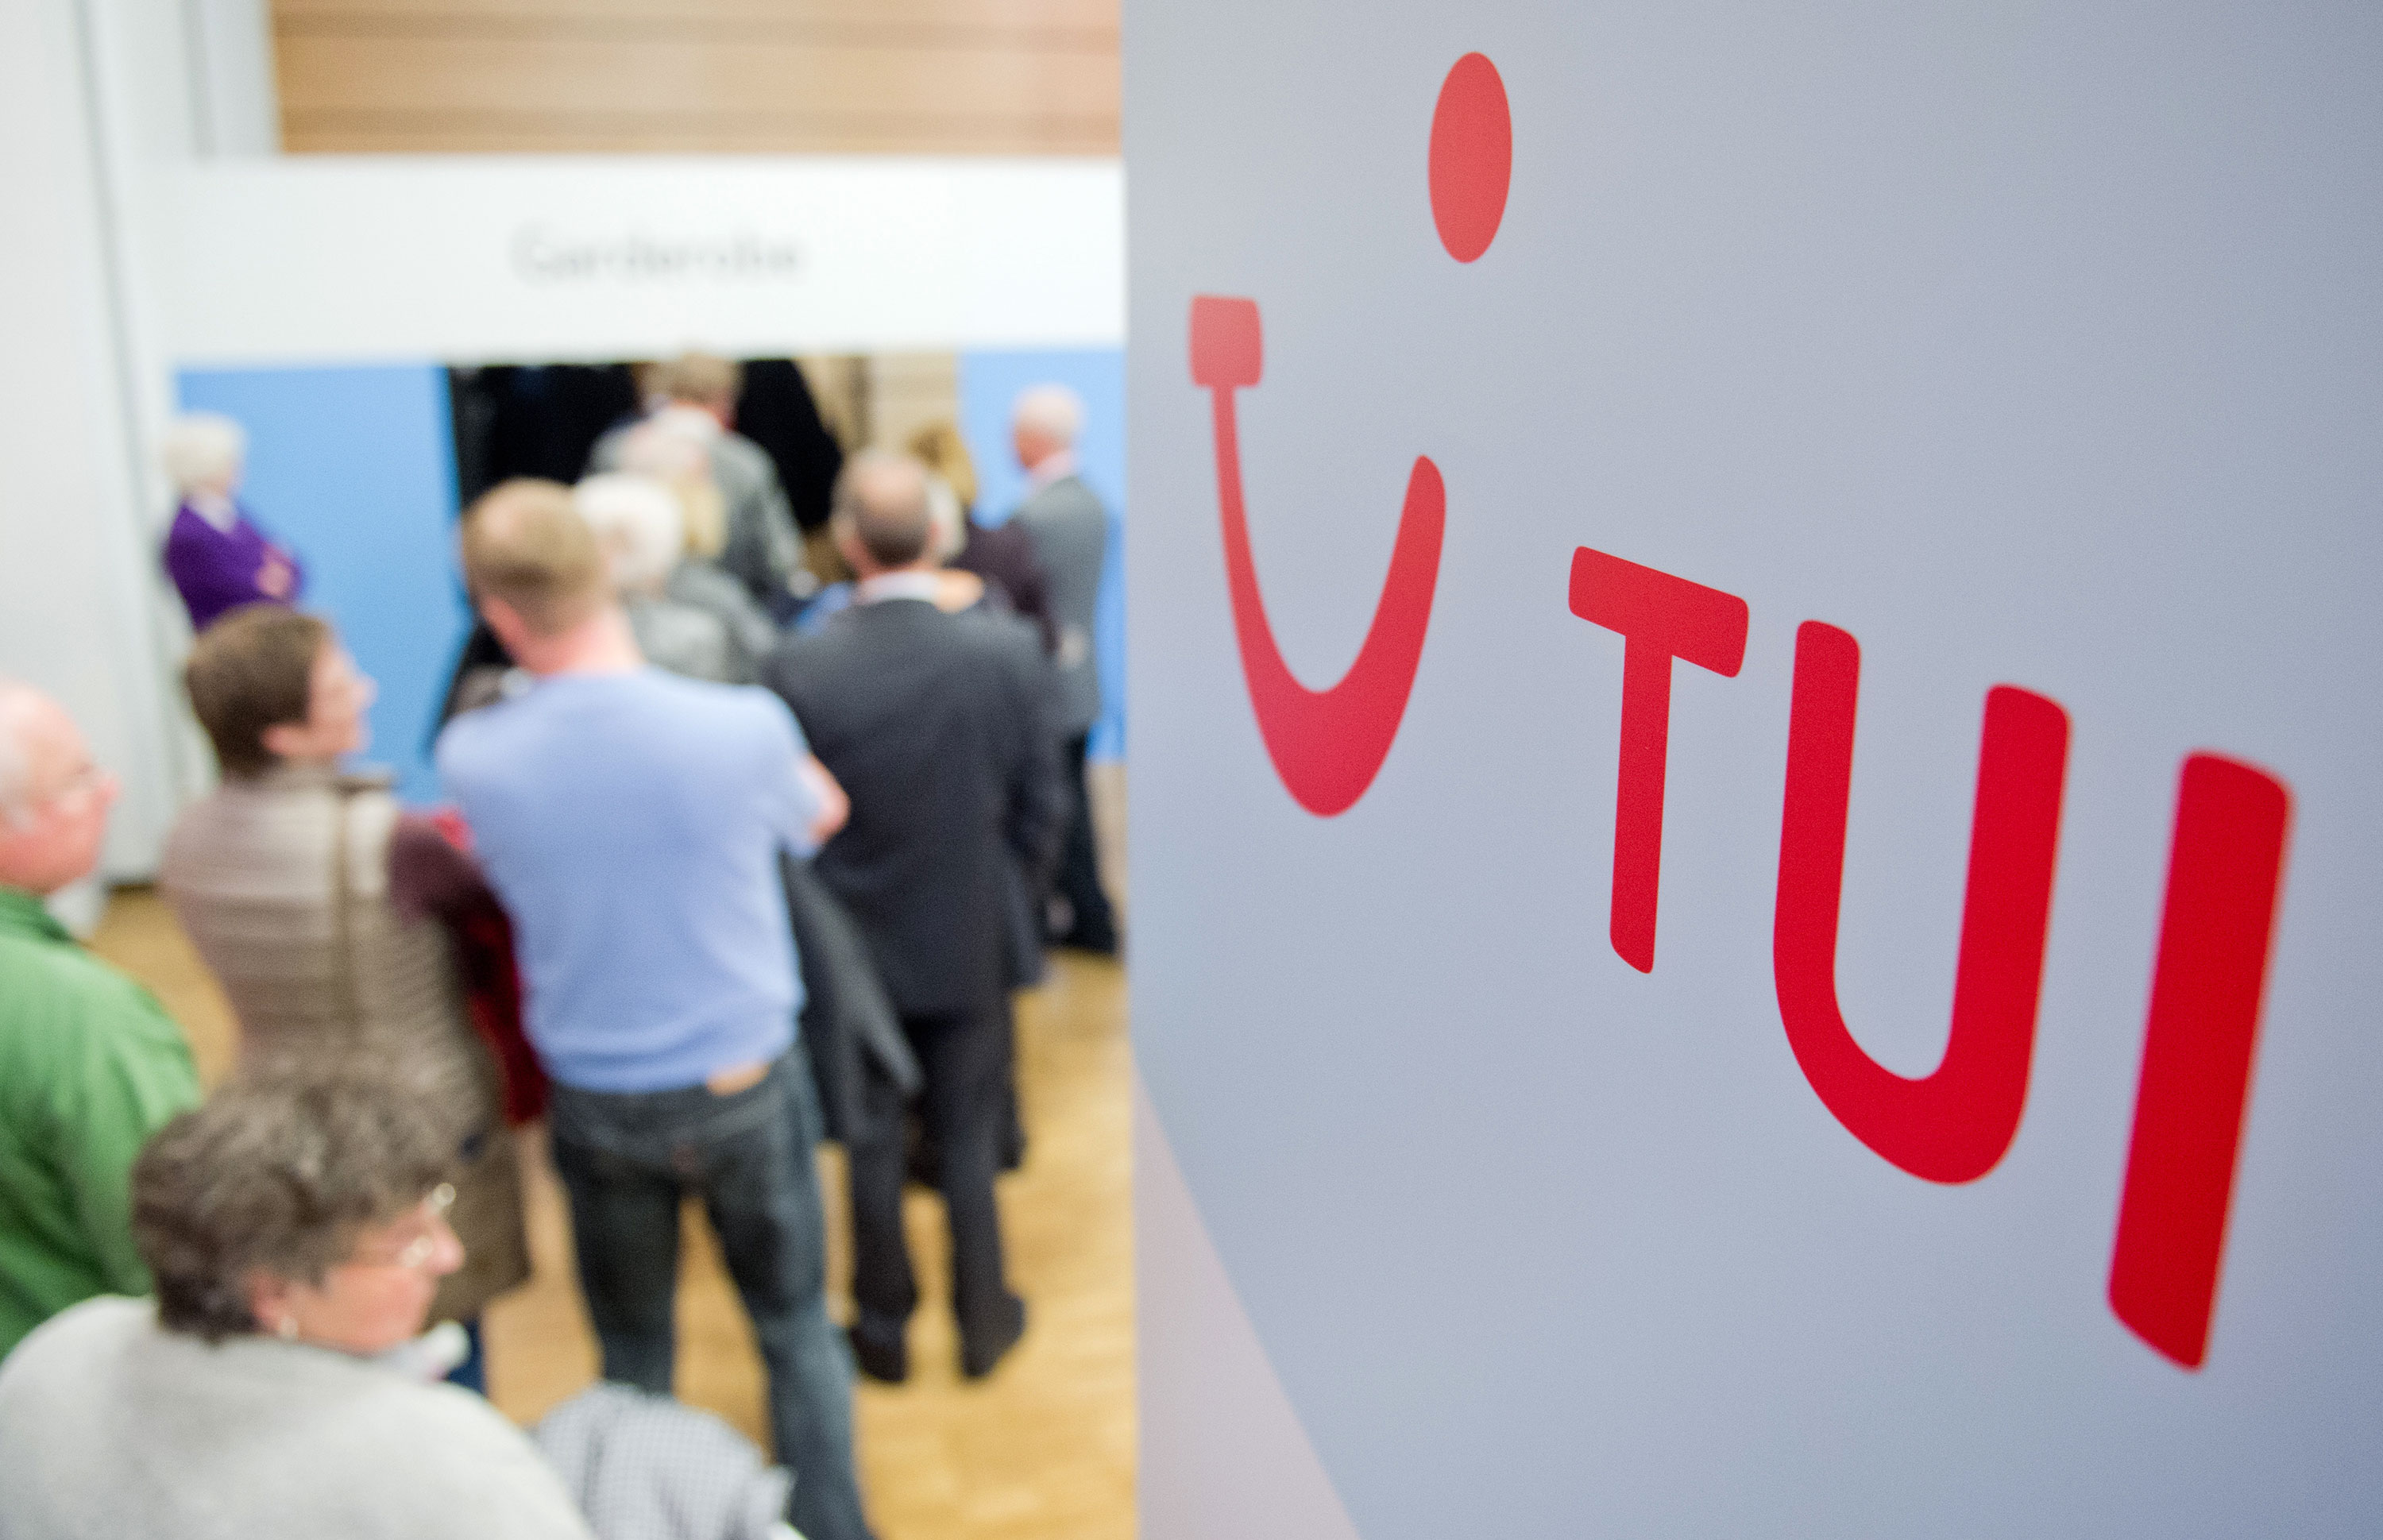 Shareholders arrive to attend the annual general meeting of tourism group TUI in Hanover, Germany, on February 9, 2016.